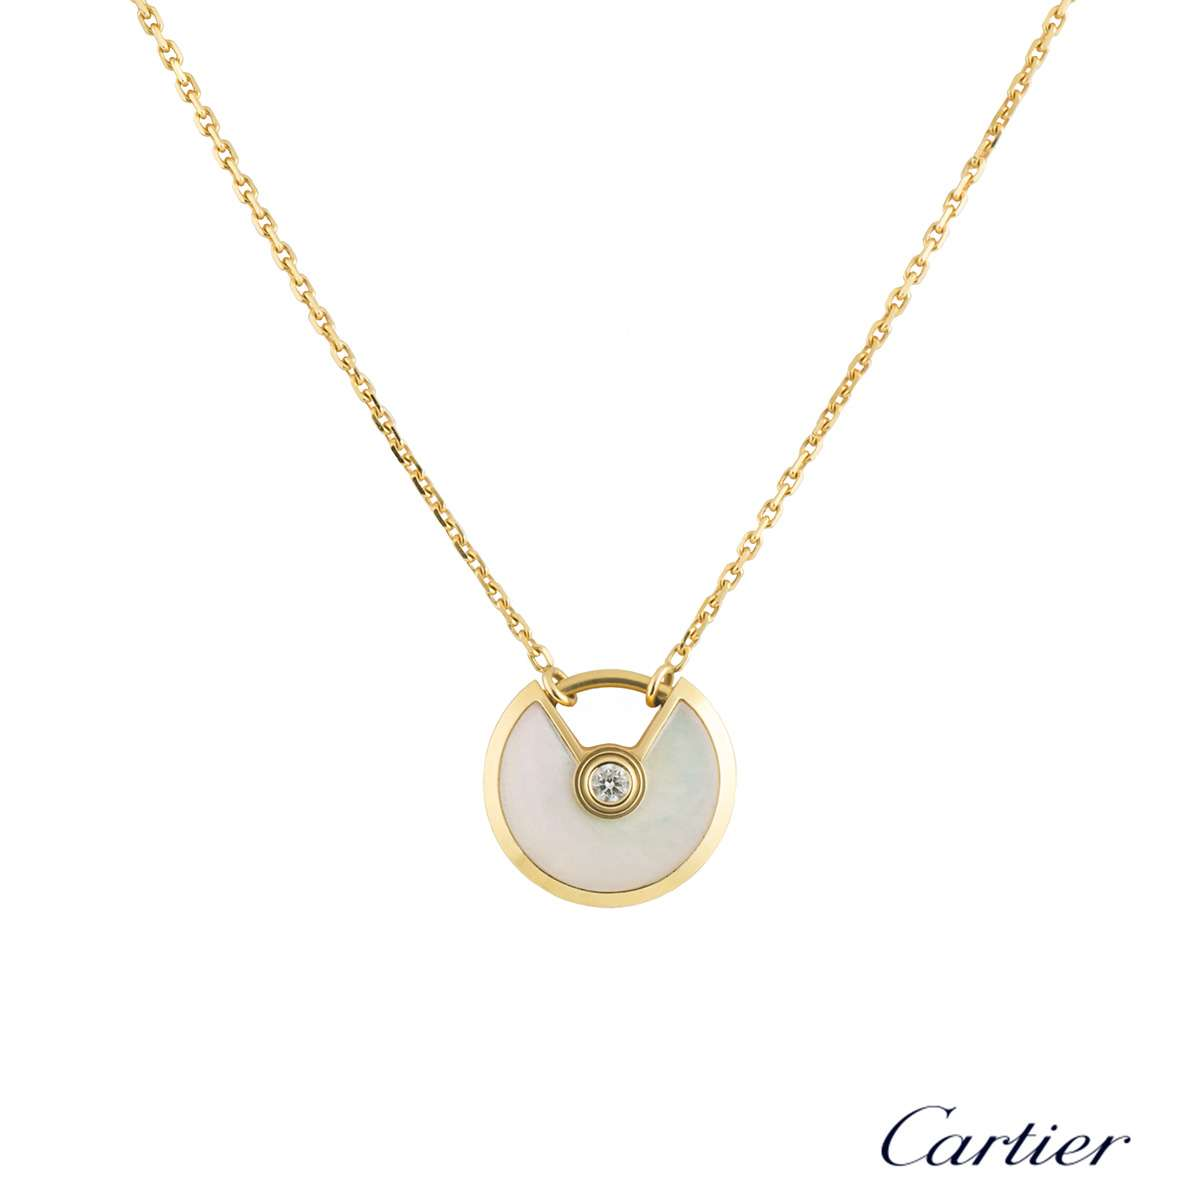 Cartier Amulette de Cartier Necklace B3047100